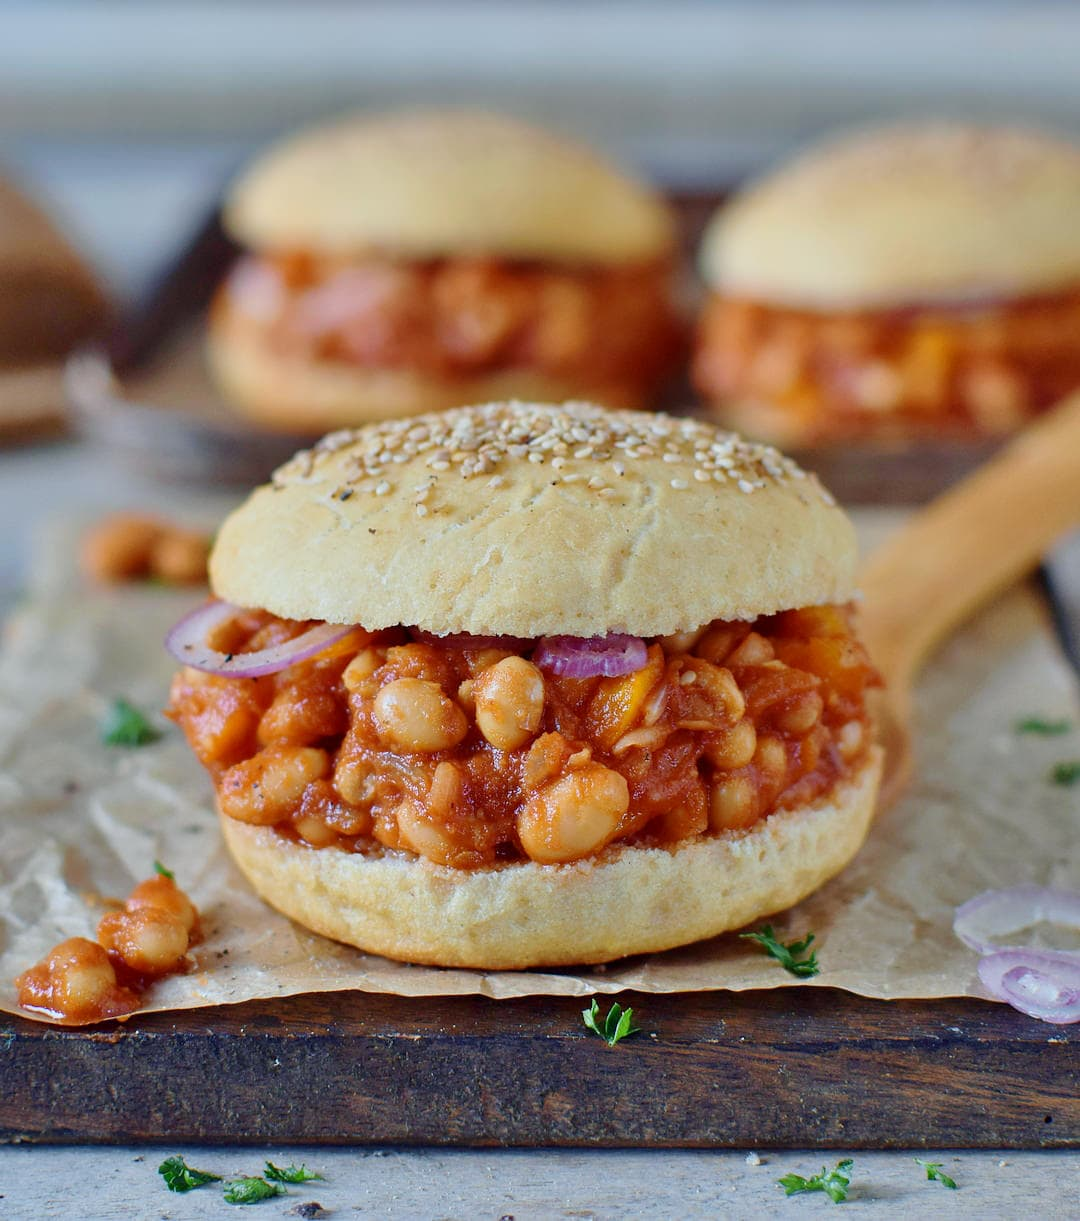 healthy bean burger recipe with gluten-free buns